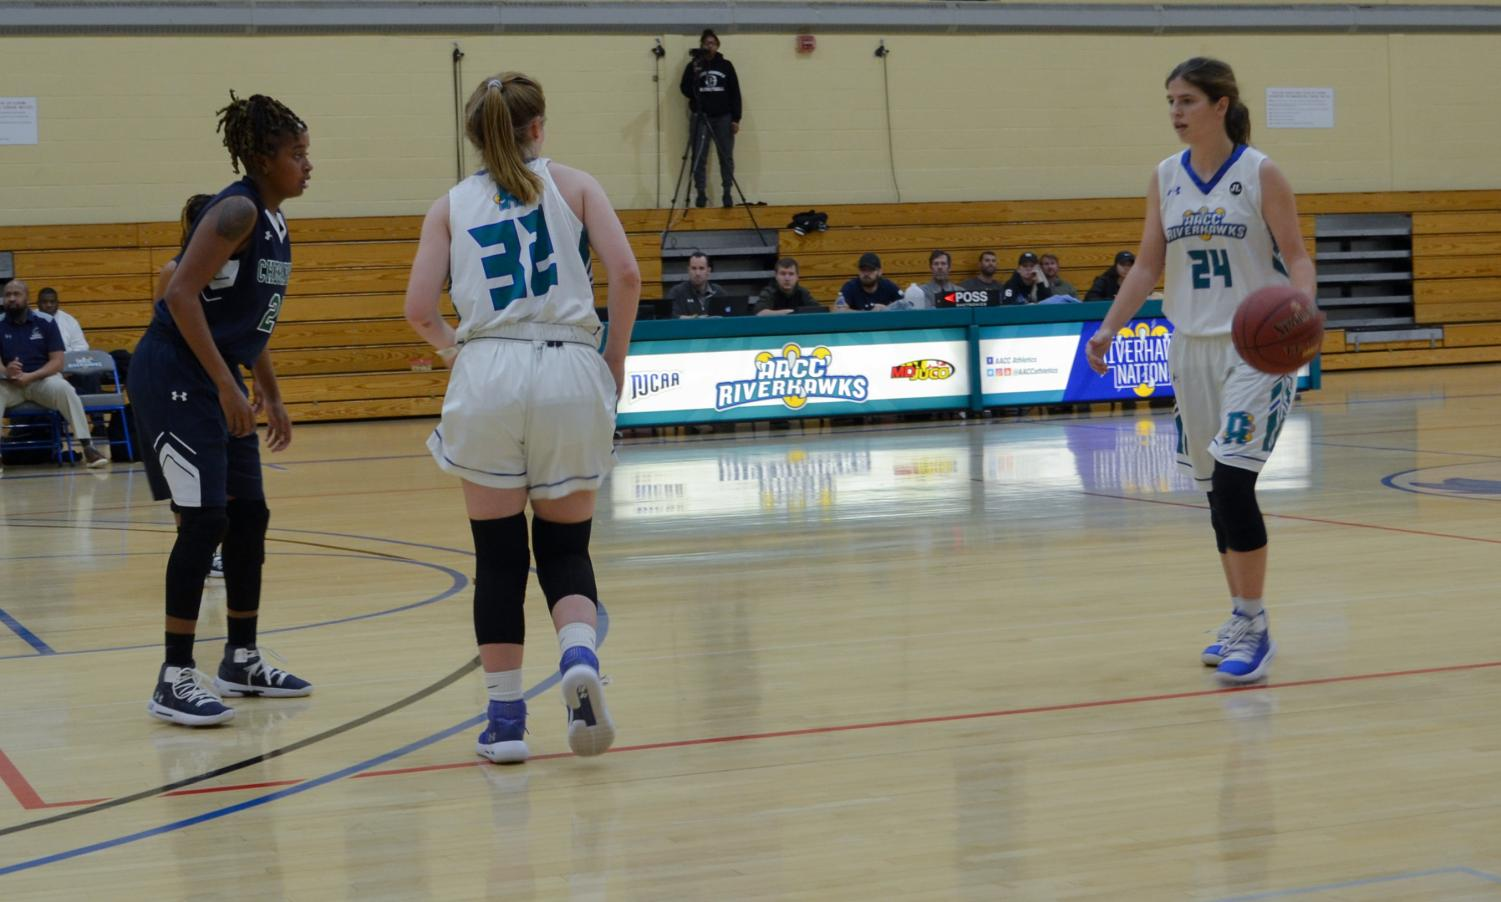 Hannah Lieb, with the ball, who plays guard and Lacey Hinkle, who plays forward, are playing at the nationals.